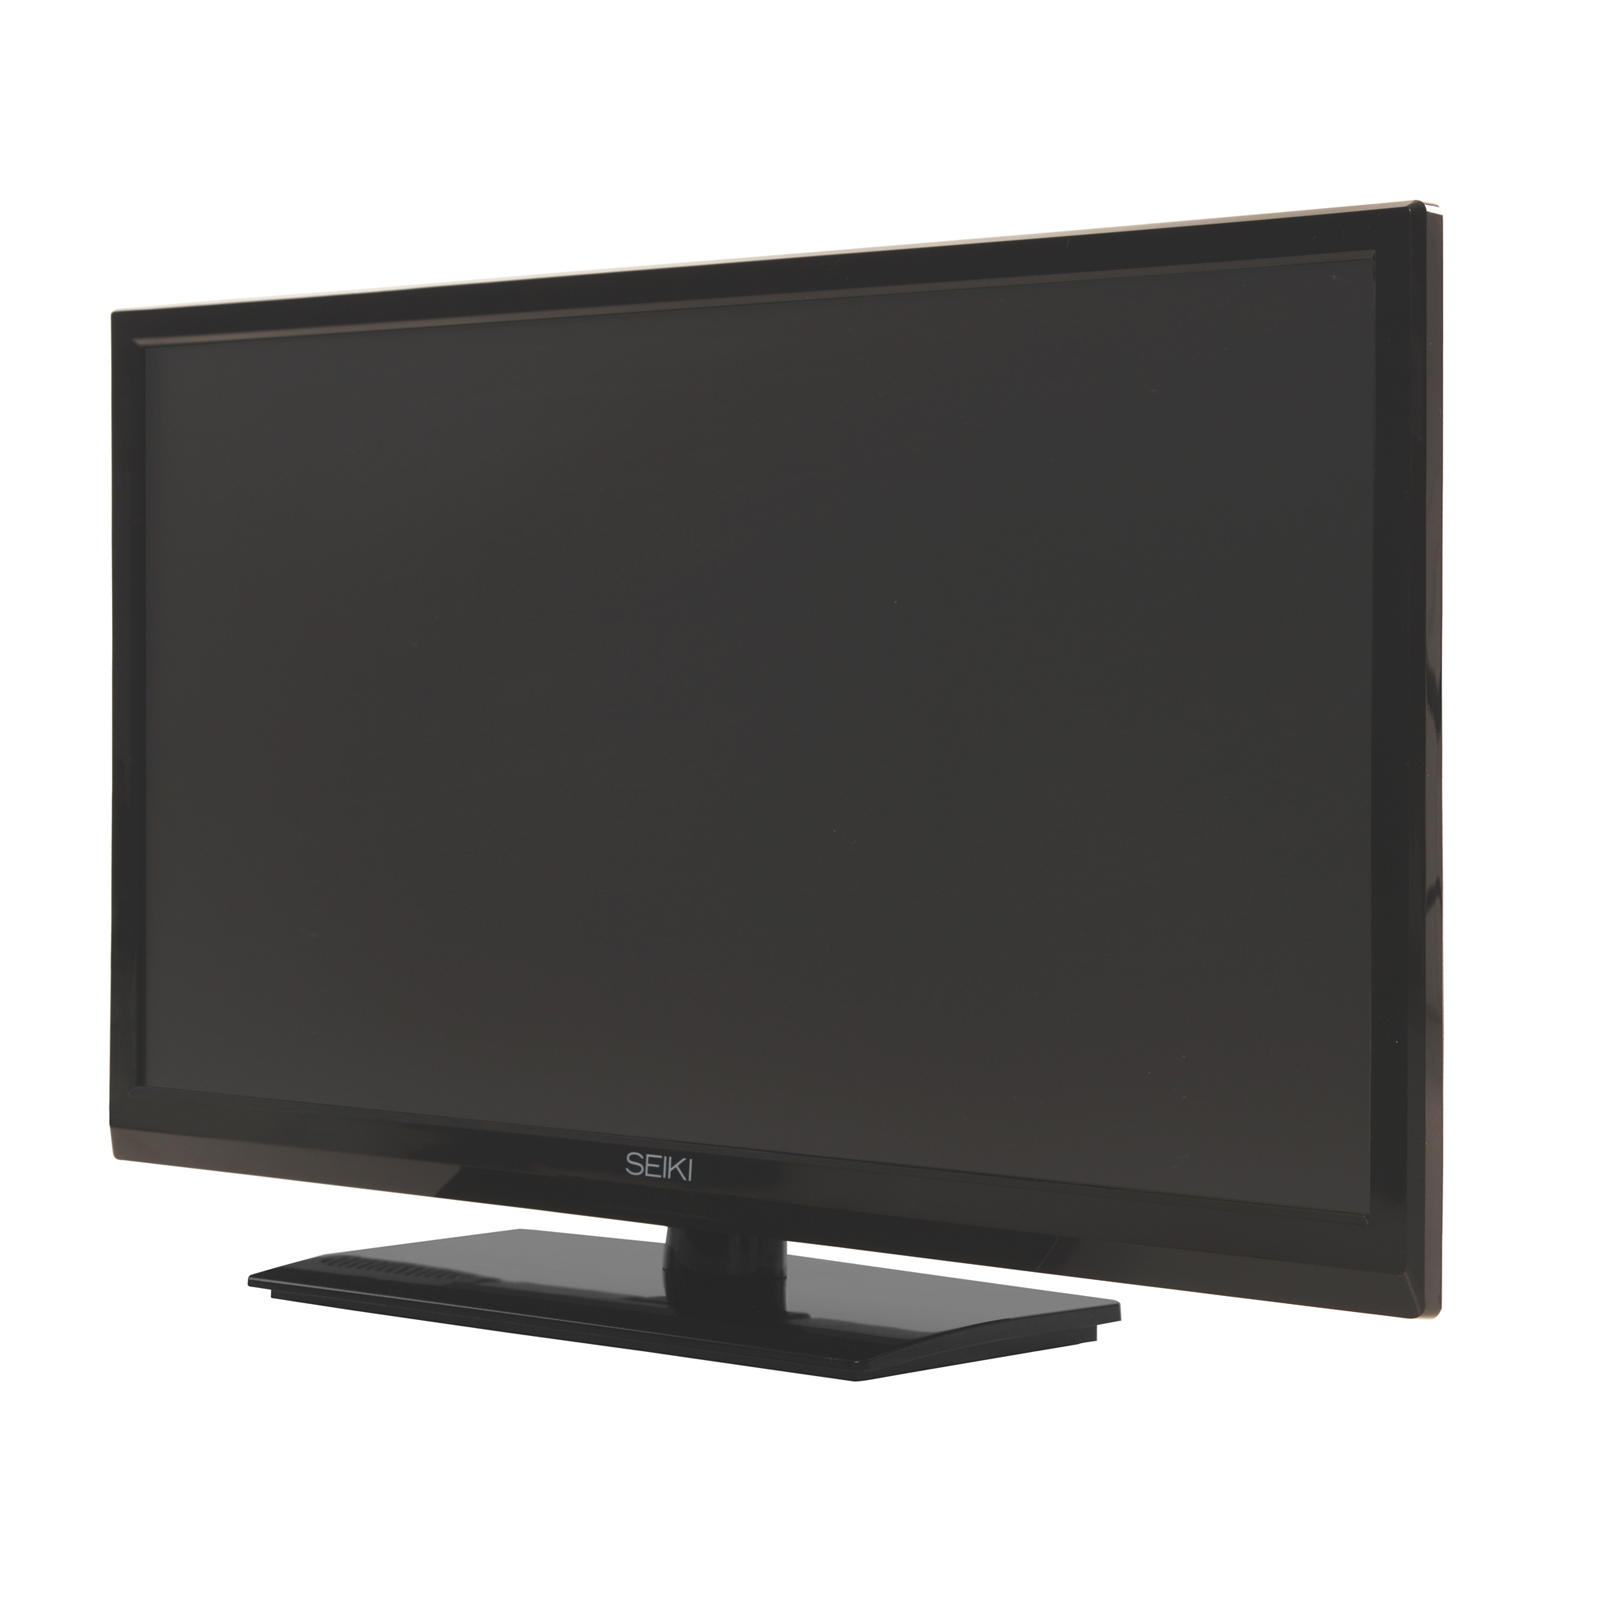 Seiki 24 Inch LED HDTV - SE24FT01